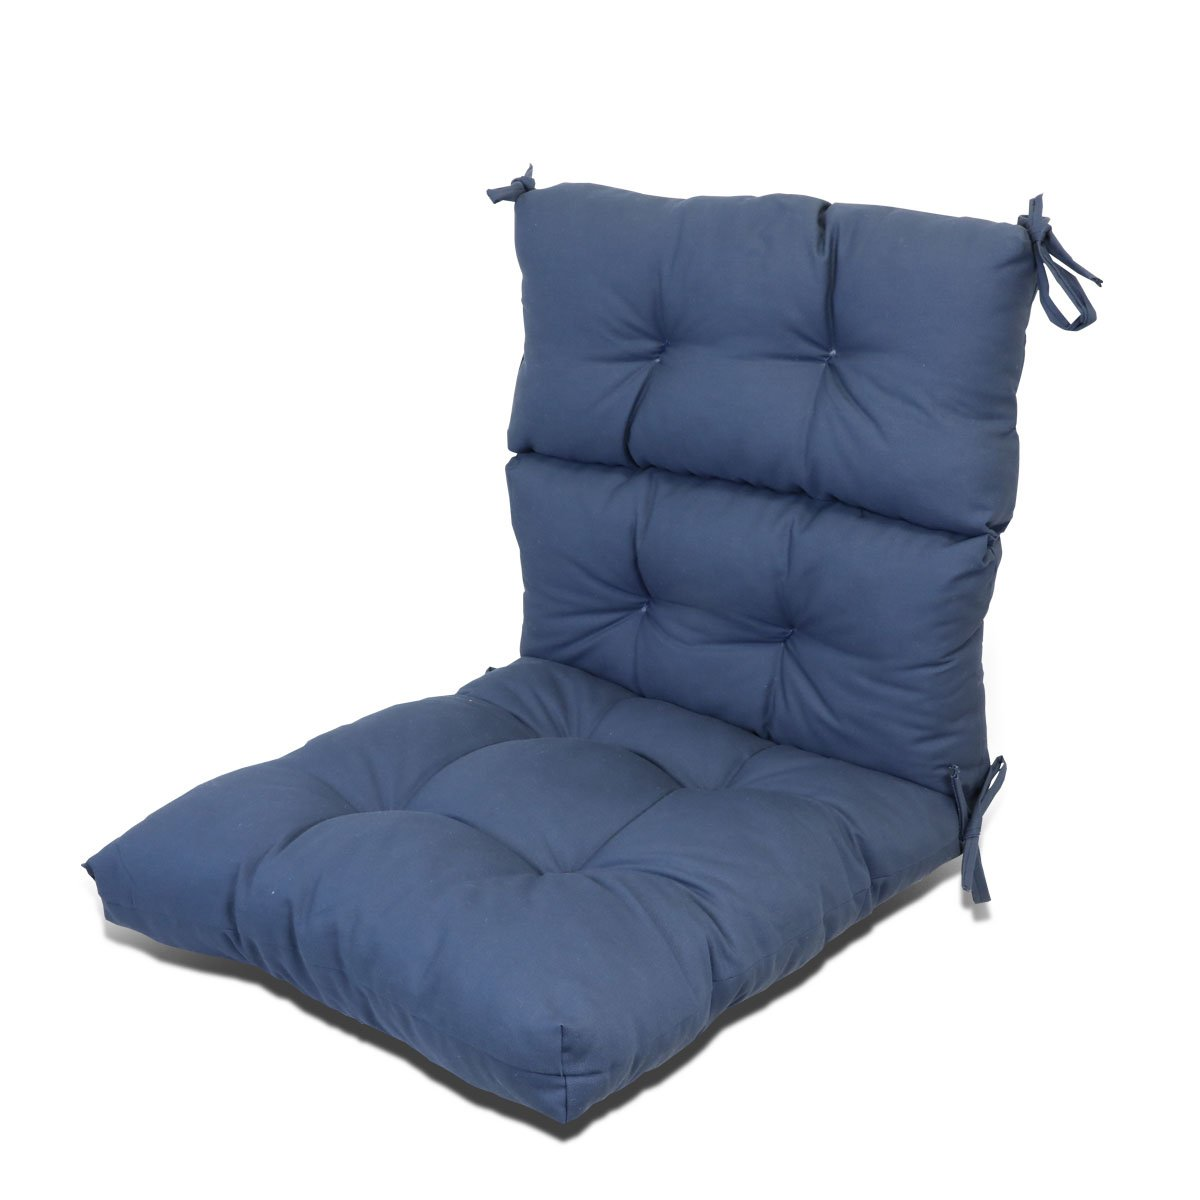 Magshion Outdoor/Indoor Pretty Wicker Seat/Back Chair Cushion Made in USA (Navy Blue)